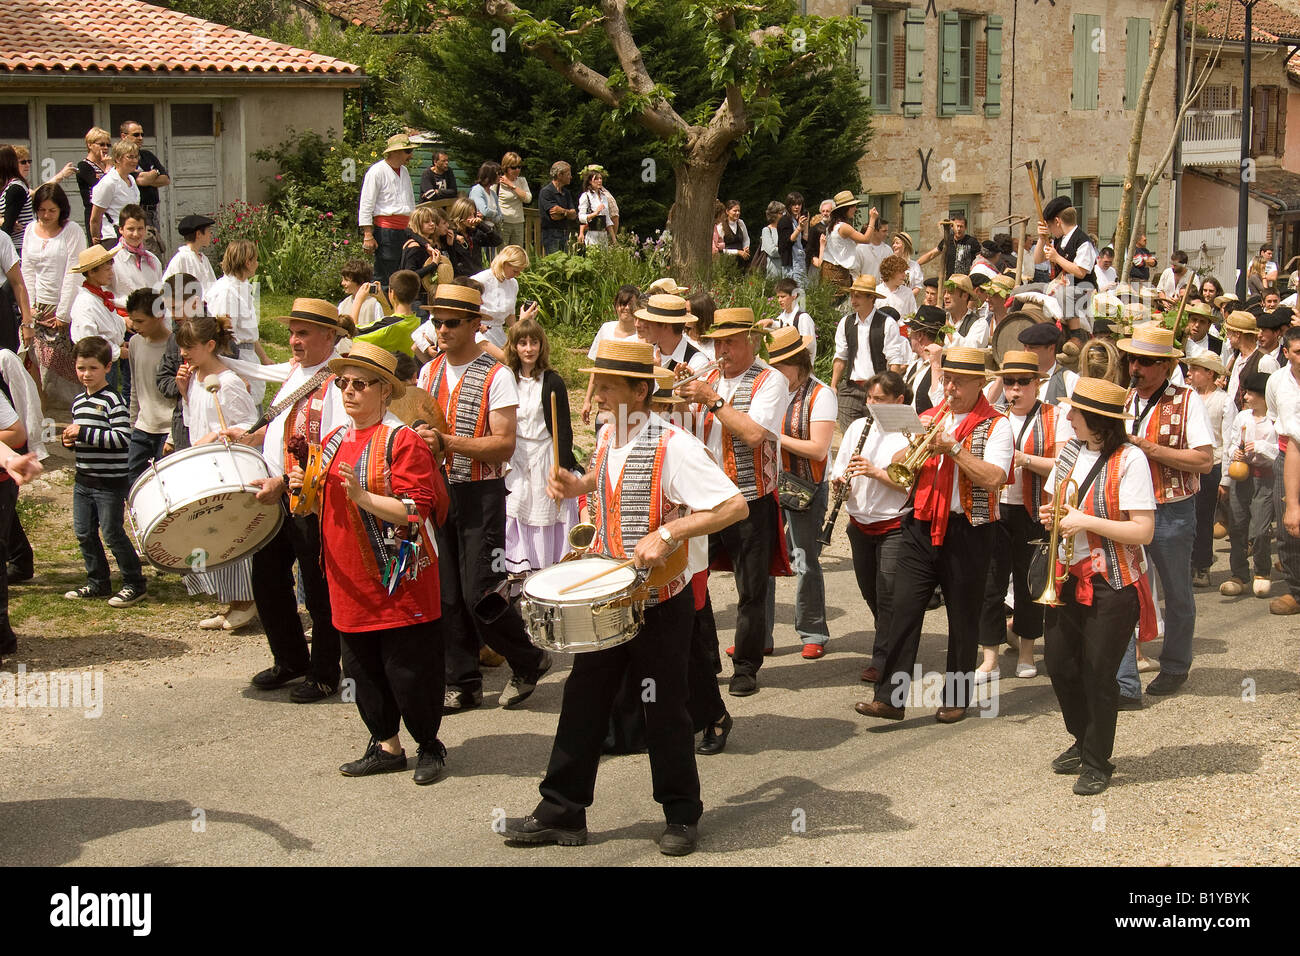 France. Spring in Auvillar sees the feast of the wine growers the Fete des Vignerons la St Noe celebrated with music - Stock Image